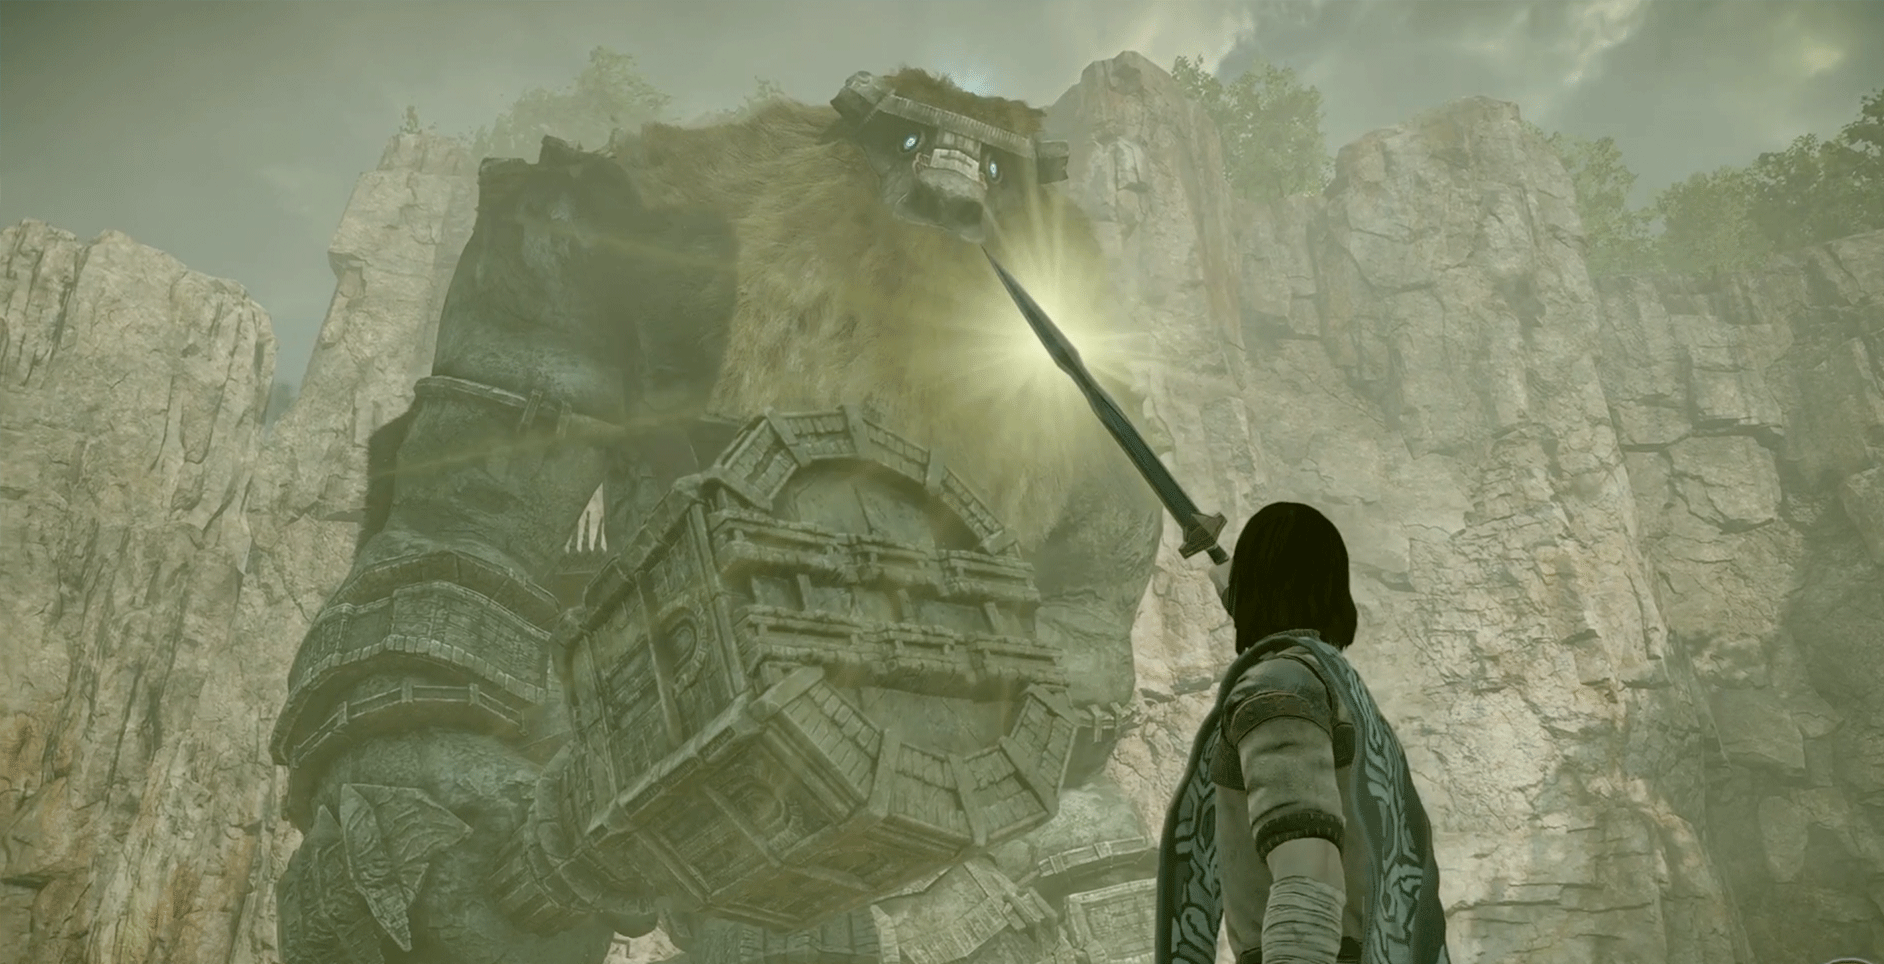 Shadow of the Colossus review roundup: The return of a masterpiece